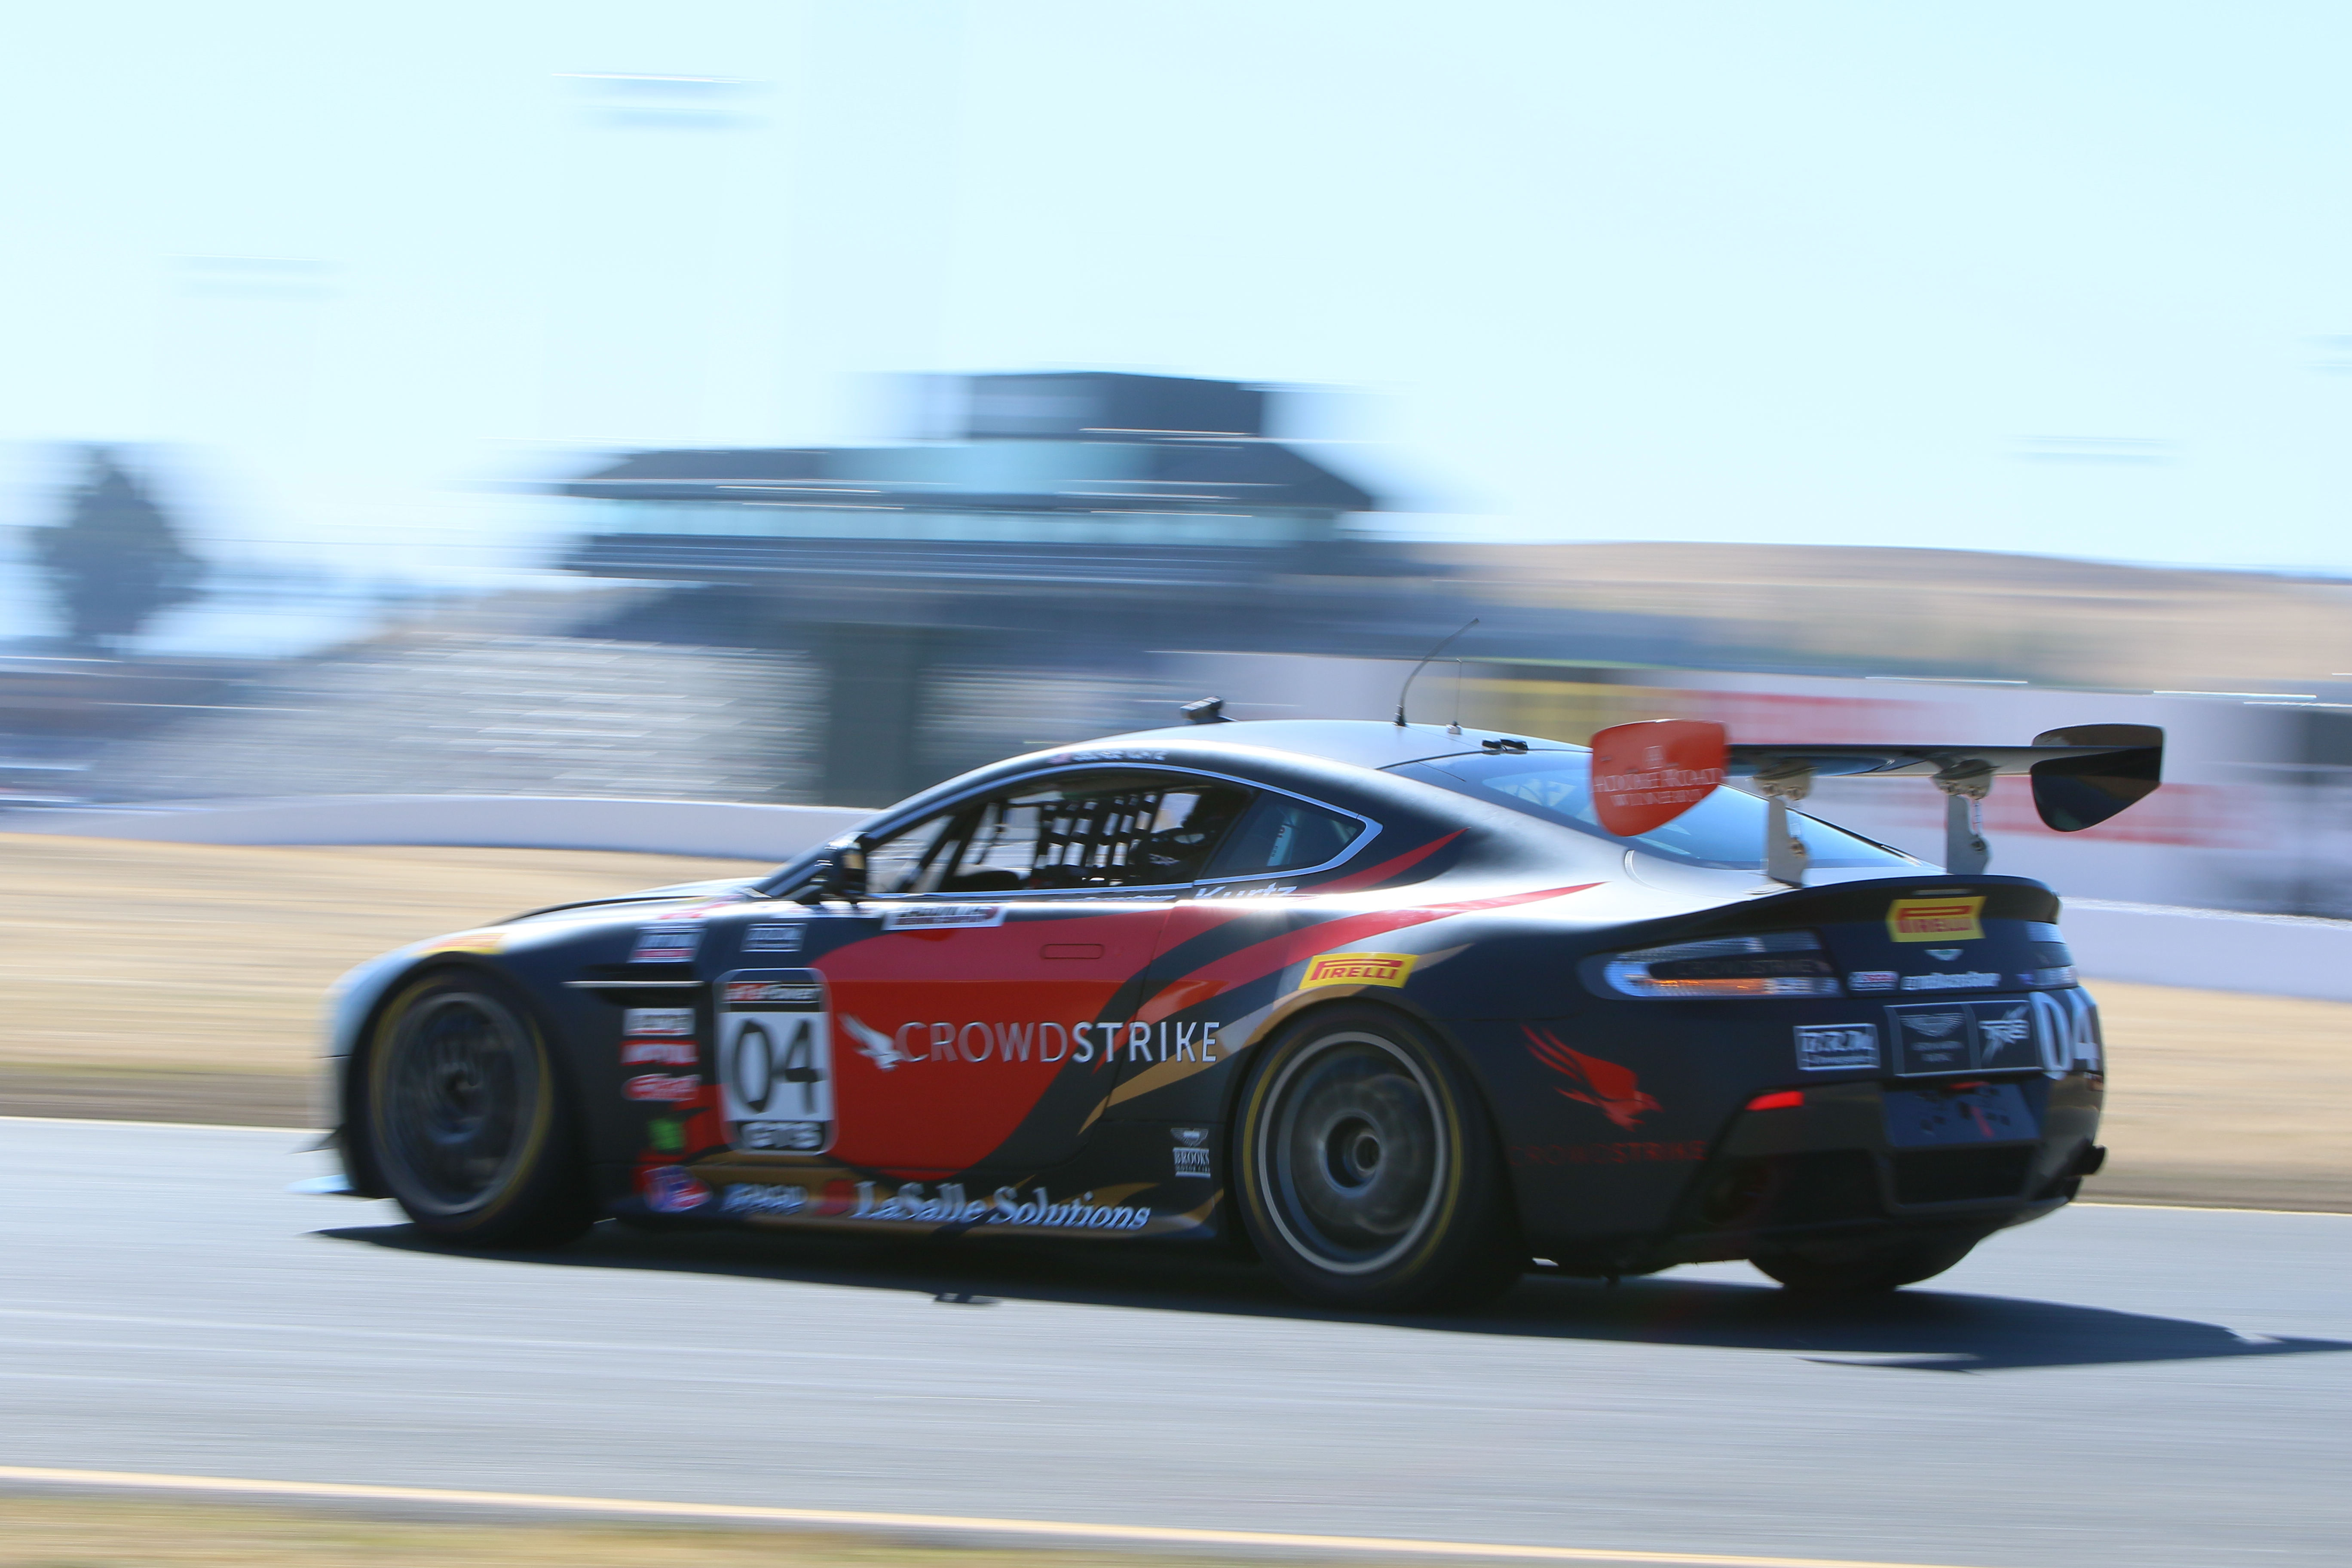 TRG-AMR Celebrates Home Pirelli World Challenge Race with Three Cars at Sonoma Raceway